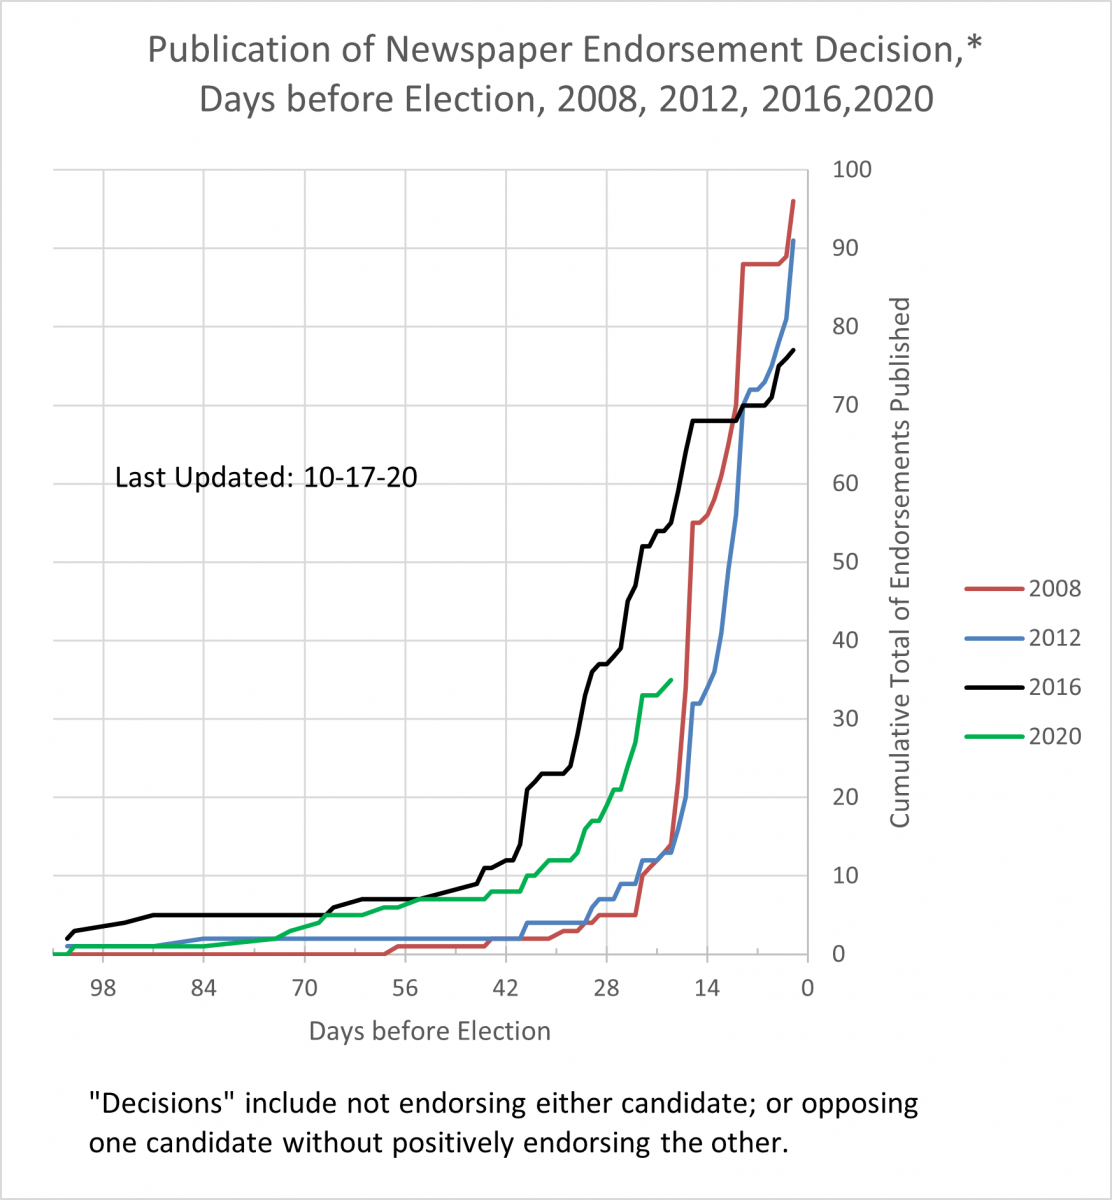 Graph of number of endorsements observed for up to 107 days before election